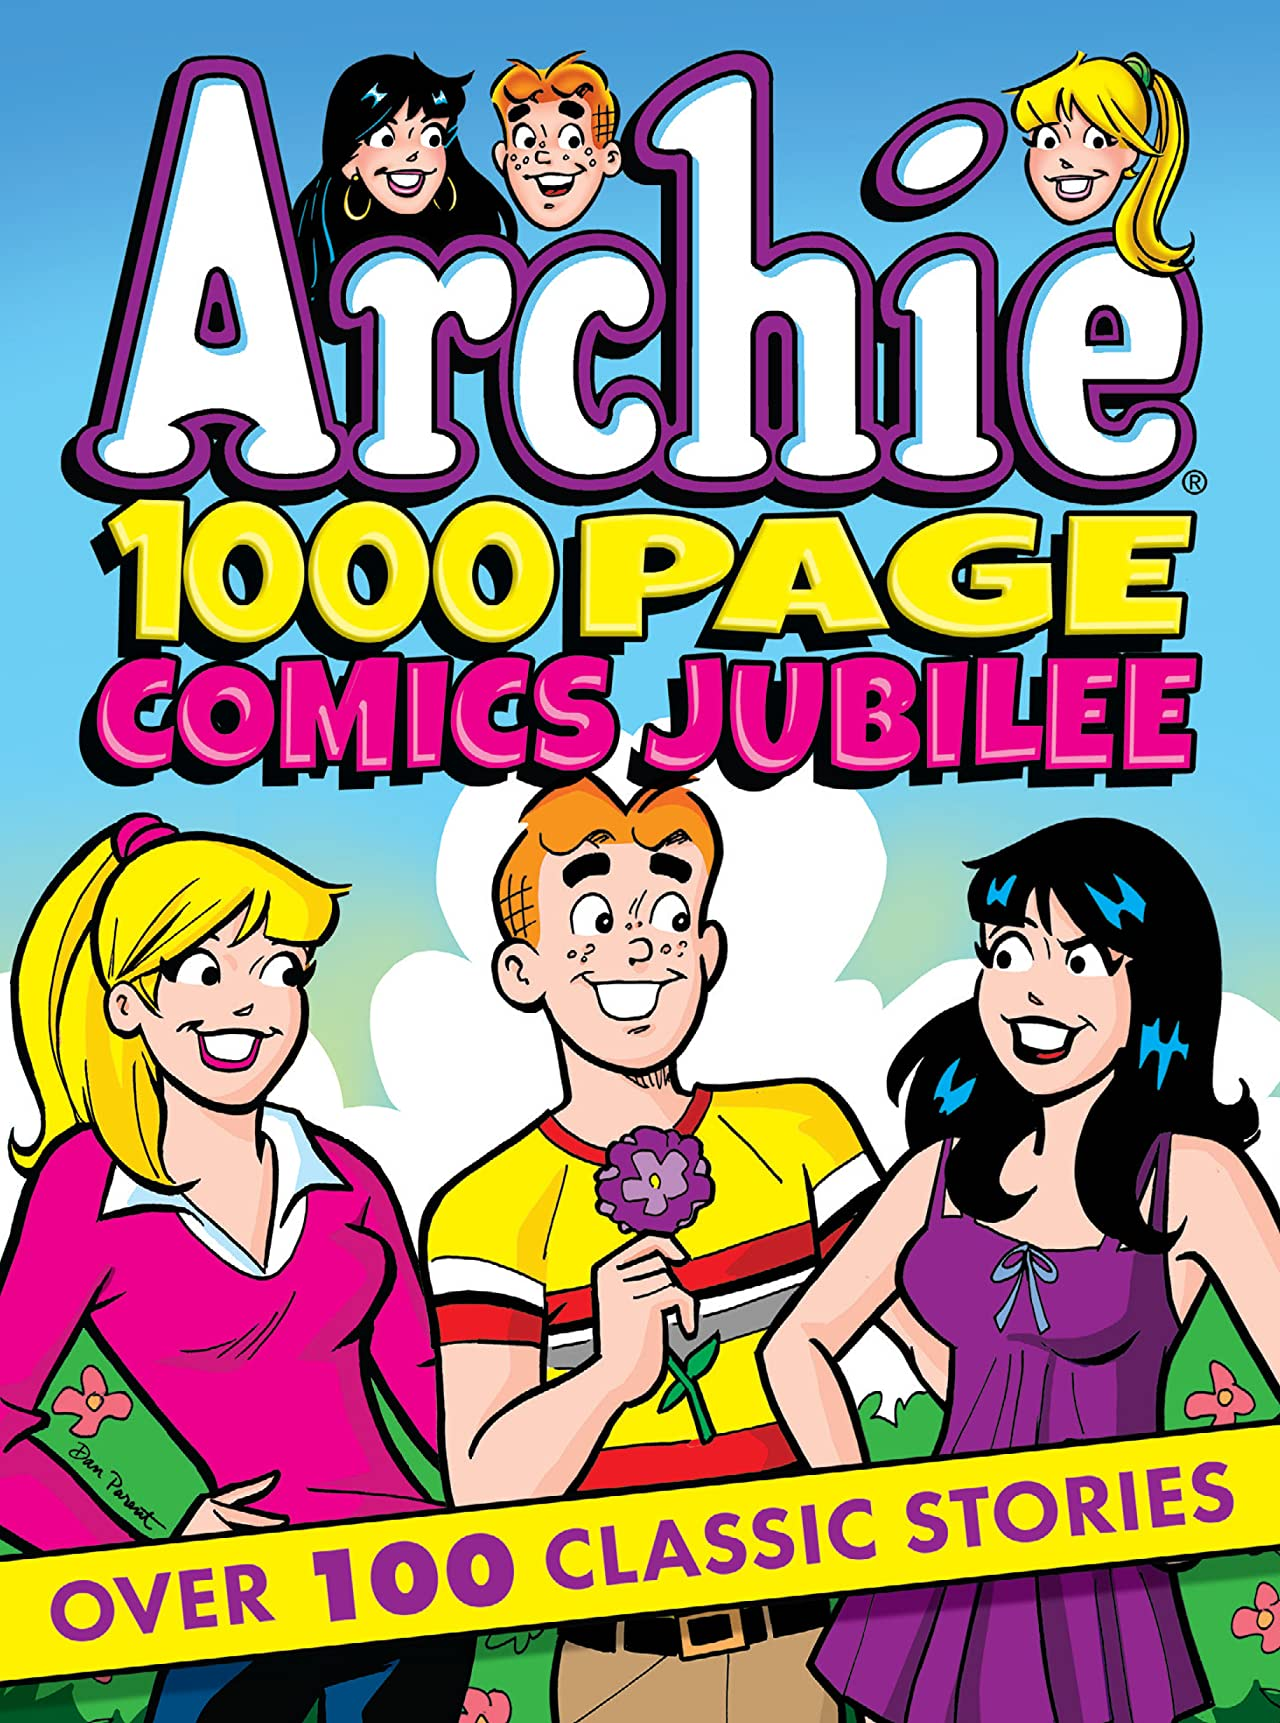 Archie 1000 Page Comics Jubilee #21